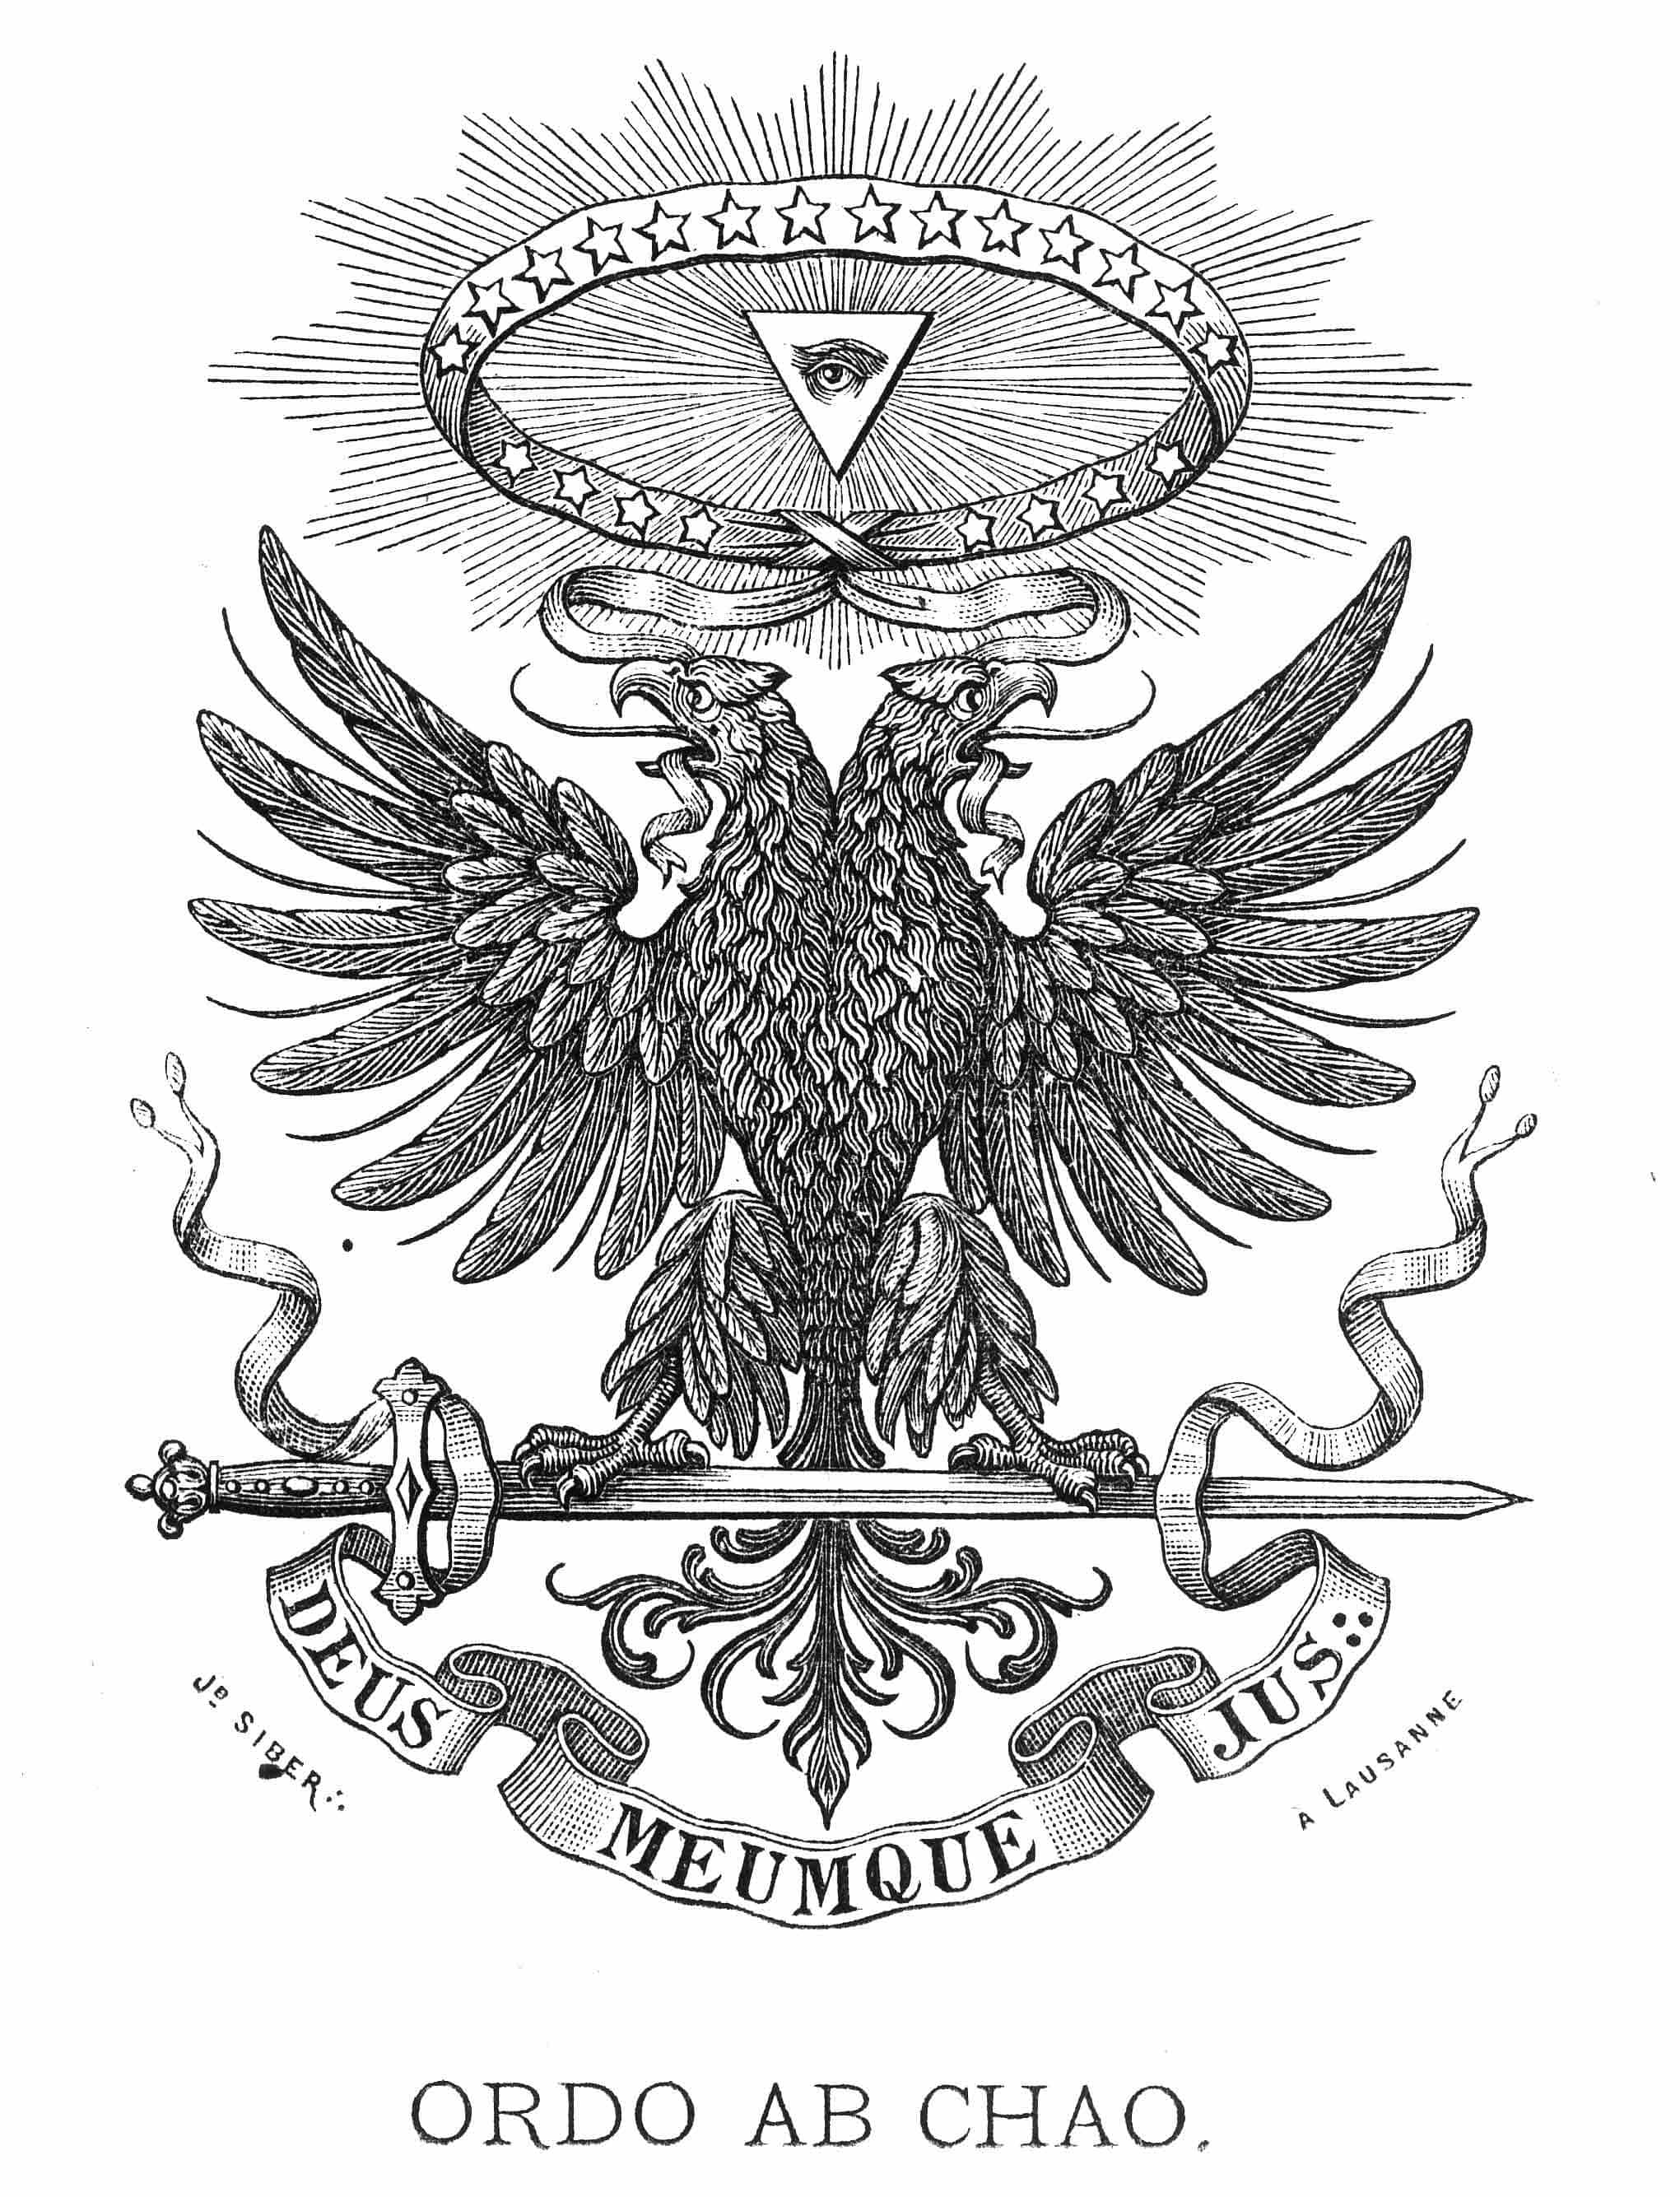 order out of chaos freemasonry - Royal Arch Masons of England